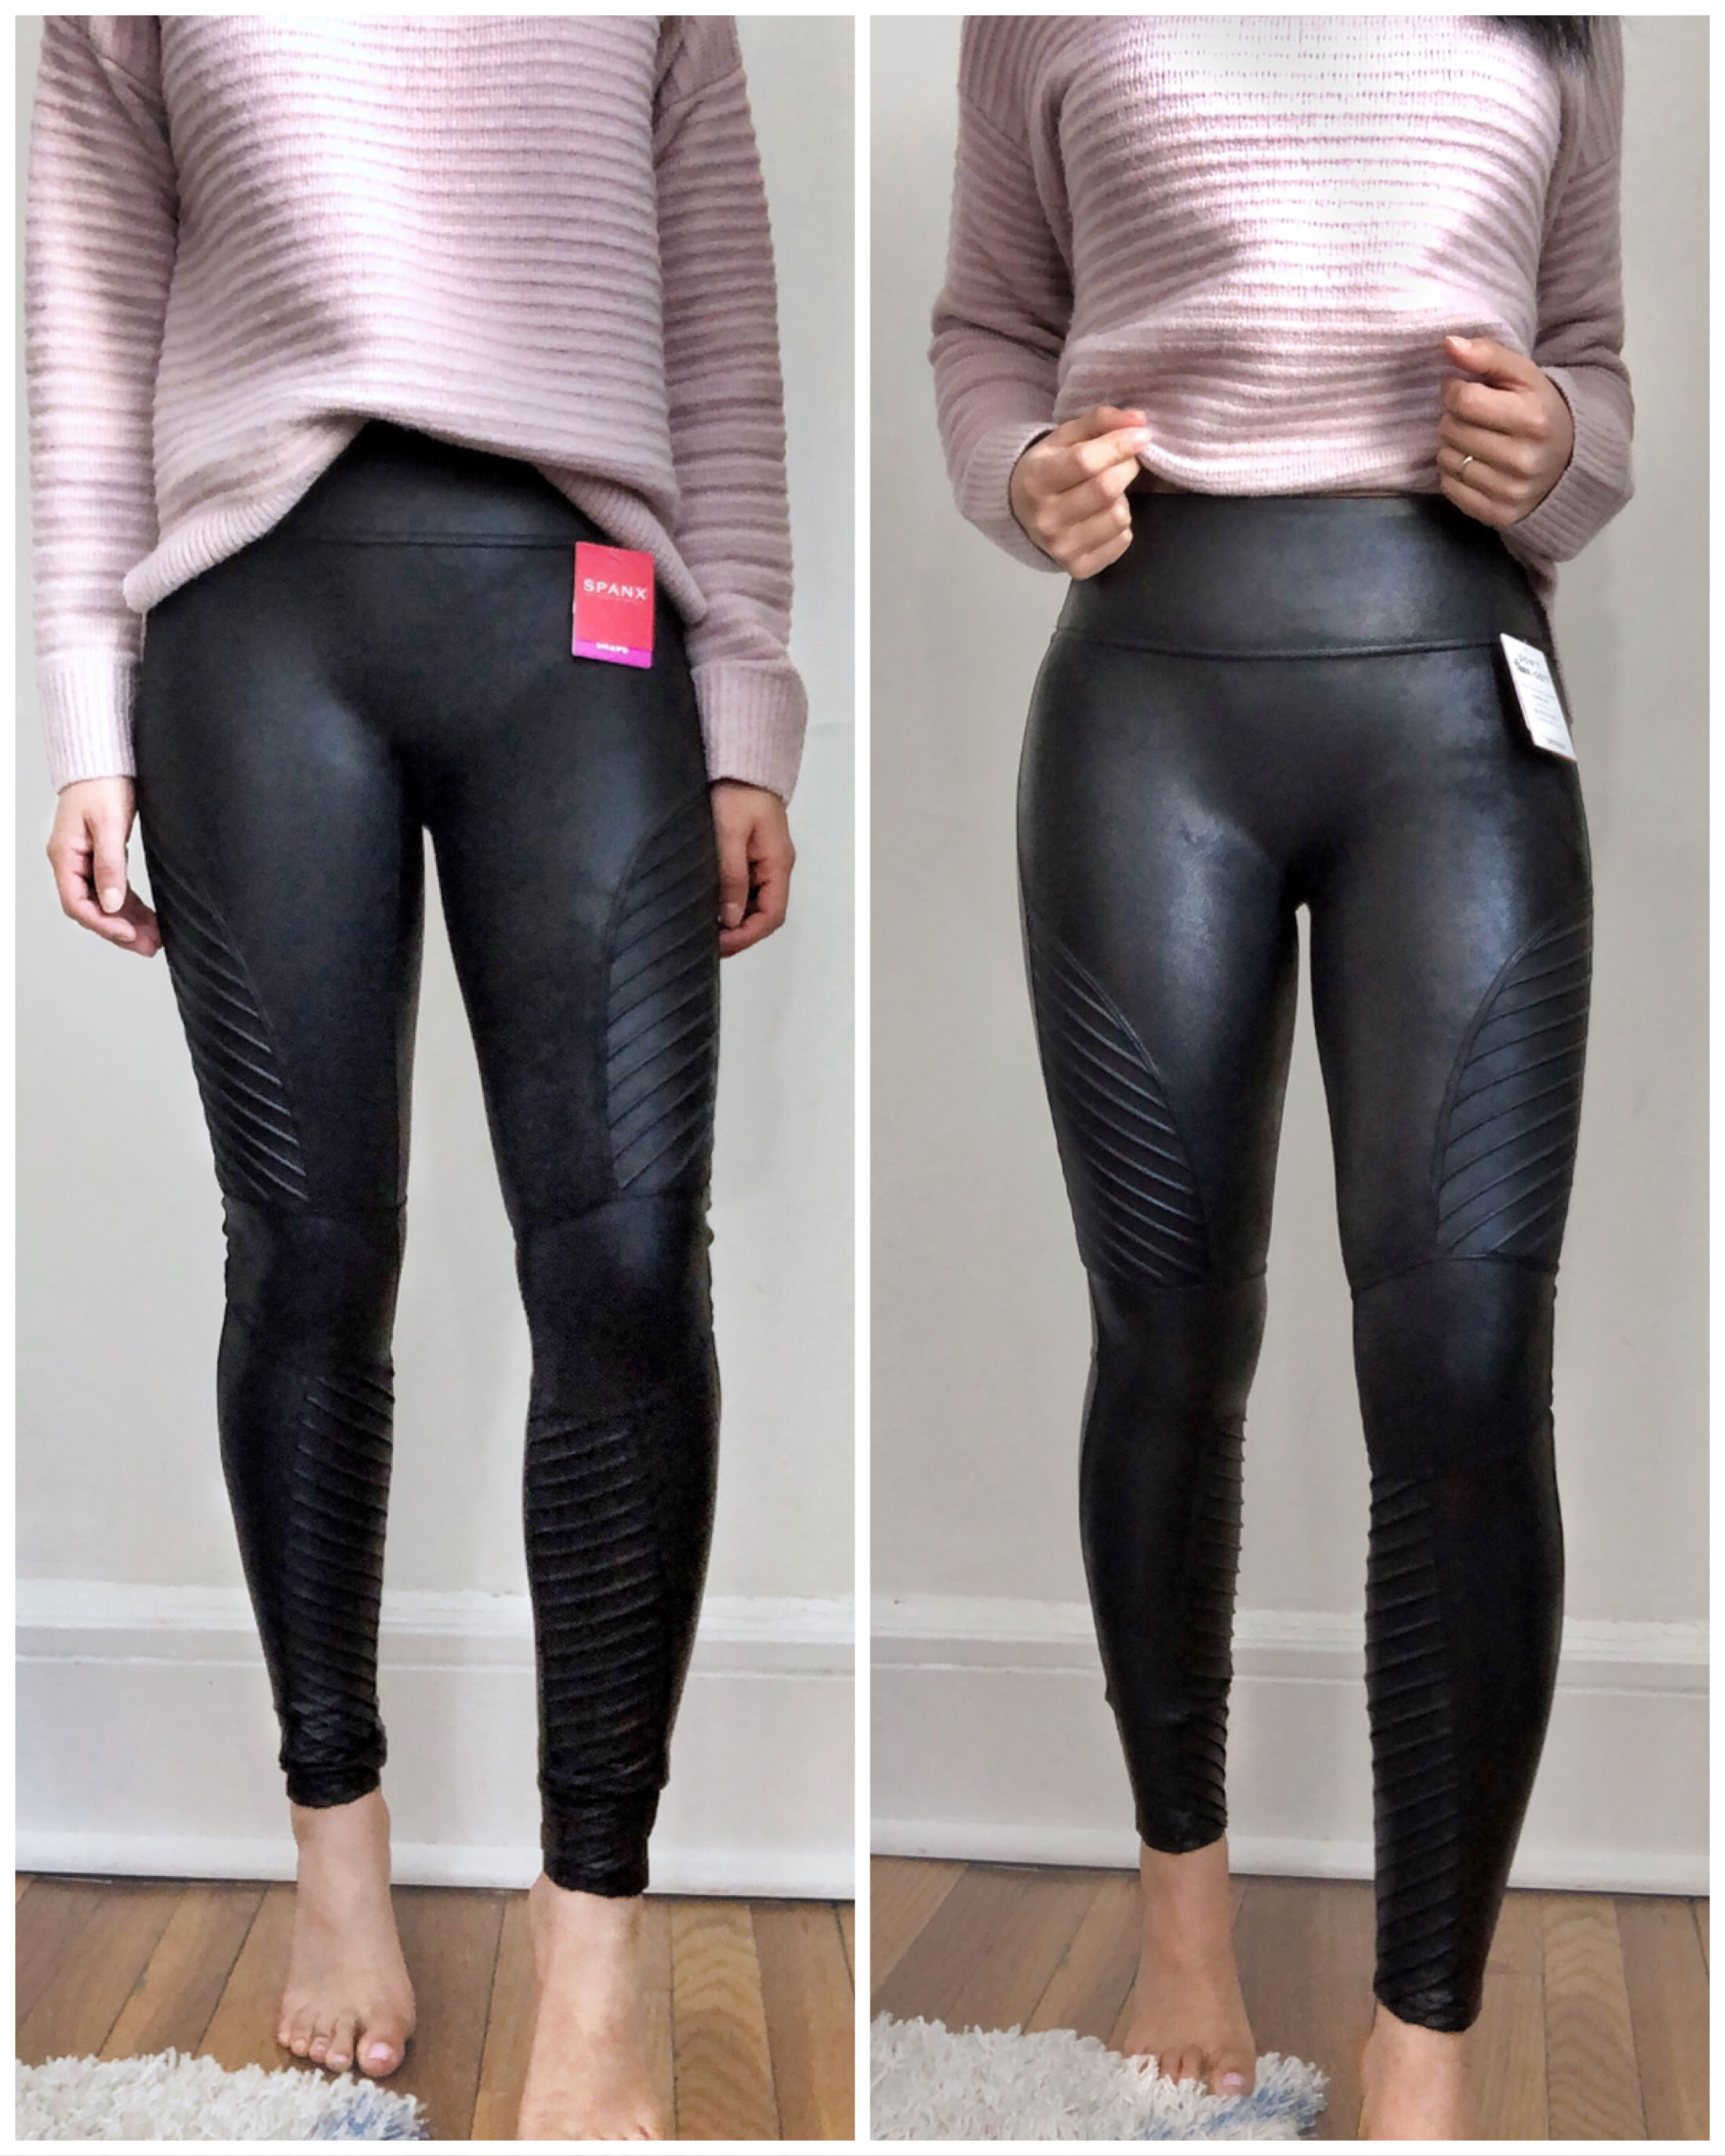 Best Buy Refurbished Spanx